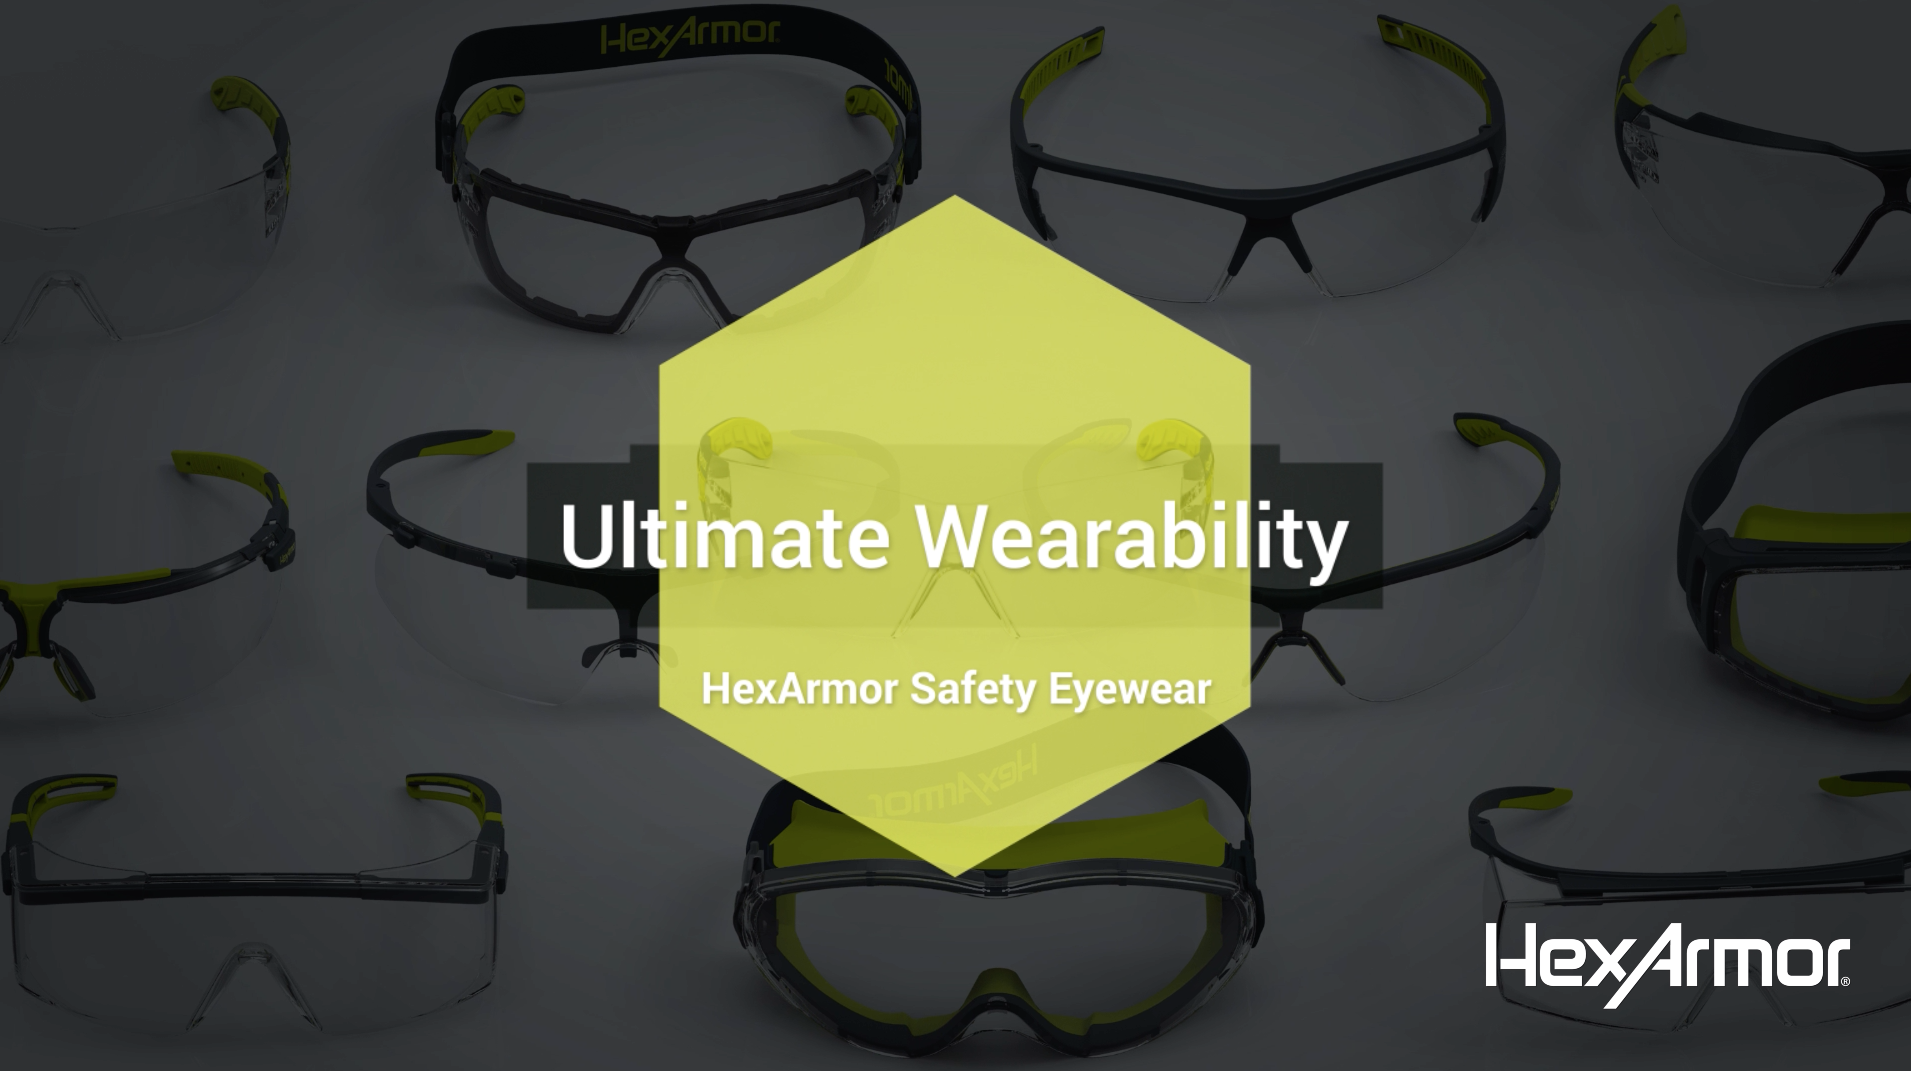 WEARABILITY® — A HexArmor Safety Eyewear Exclusive